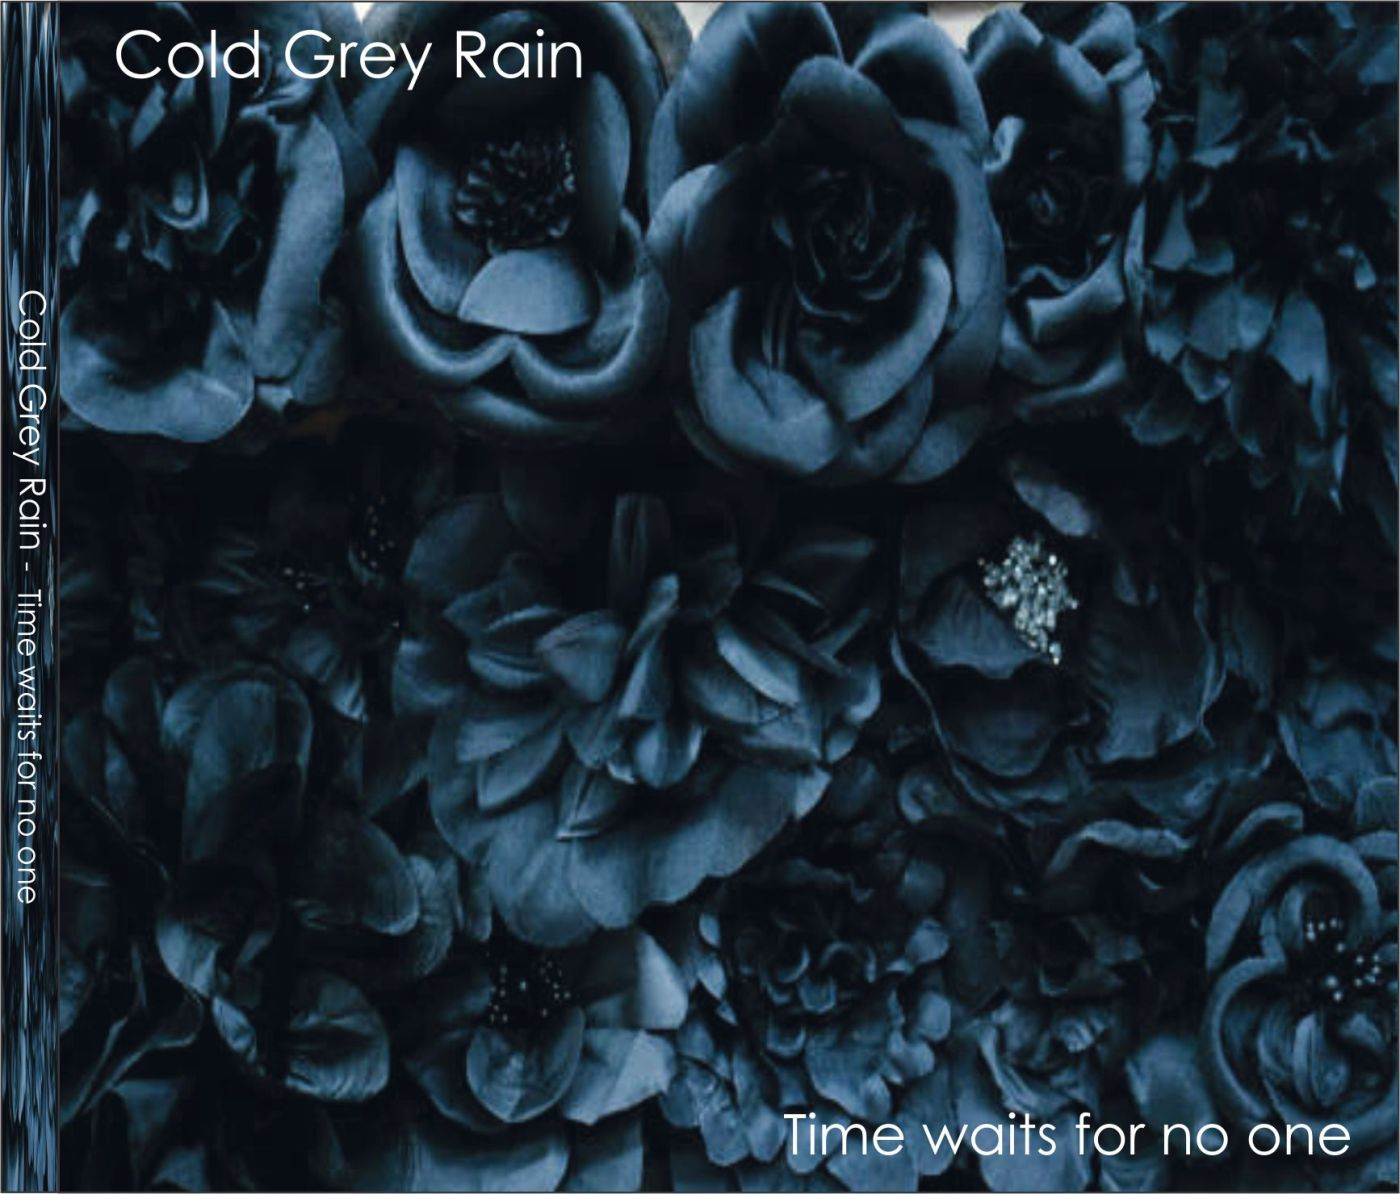 Cold Grey Rain - Time Waits For No One (LP, 2020)